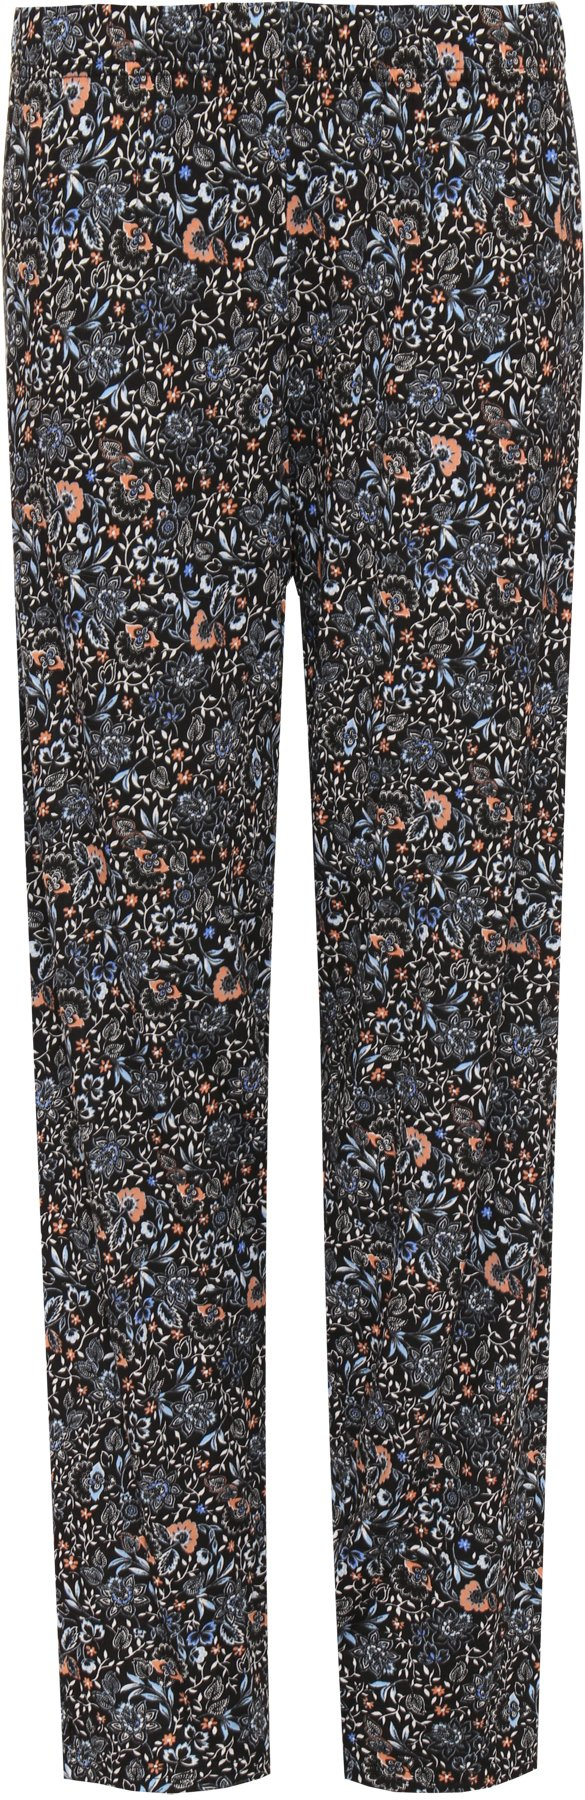 Wearall Women's Plus Floral Stretch Trousers - Black Blue - US 12 (UK 16)